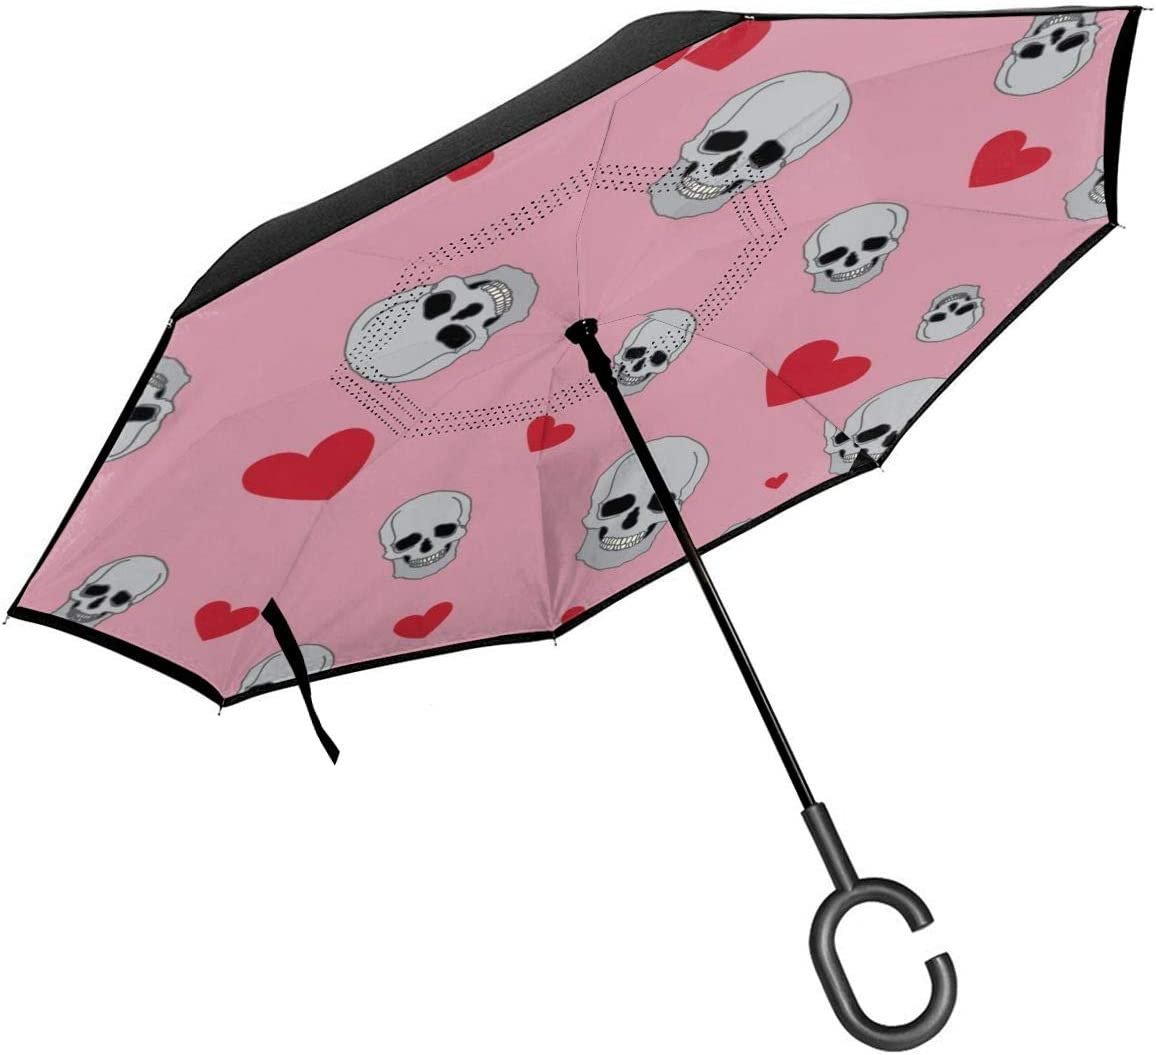 PYFXSALA Smiles Skull Heart Pattern Windproof Inverted Umbrella Double Layer UV Protection Self Stand Upside Down with C-Shaped Handle Folding Reverse Umbrella for Car Rain Outdoor